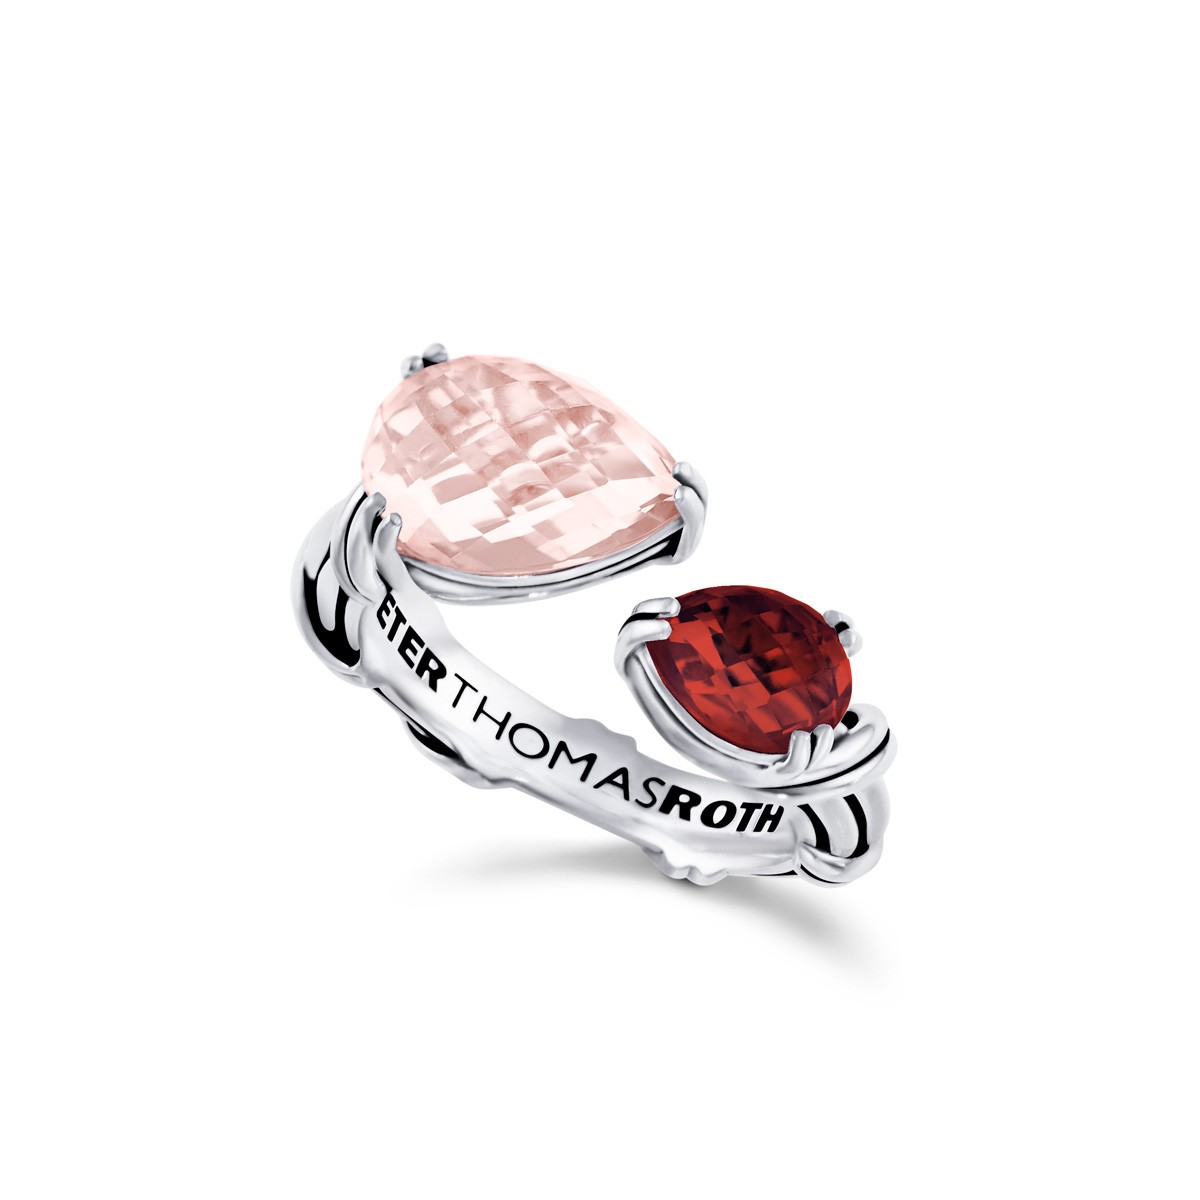 Fantasies Pear Bypass Ring in sterling silver with rose quartz and garnet